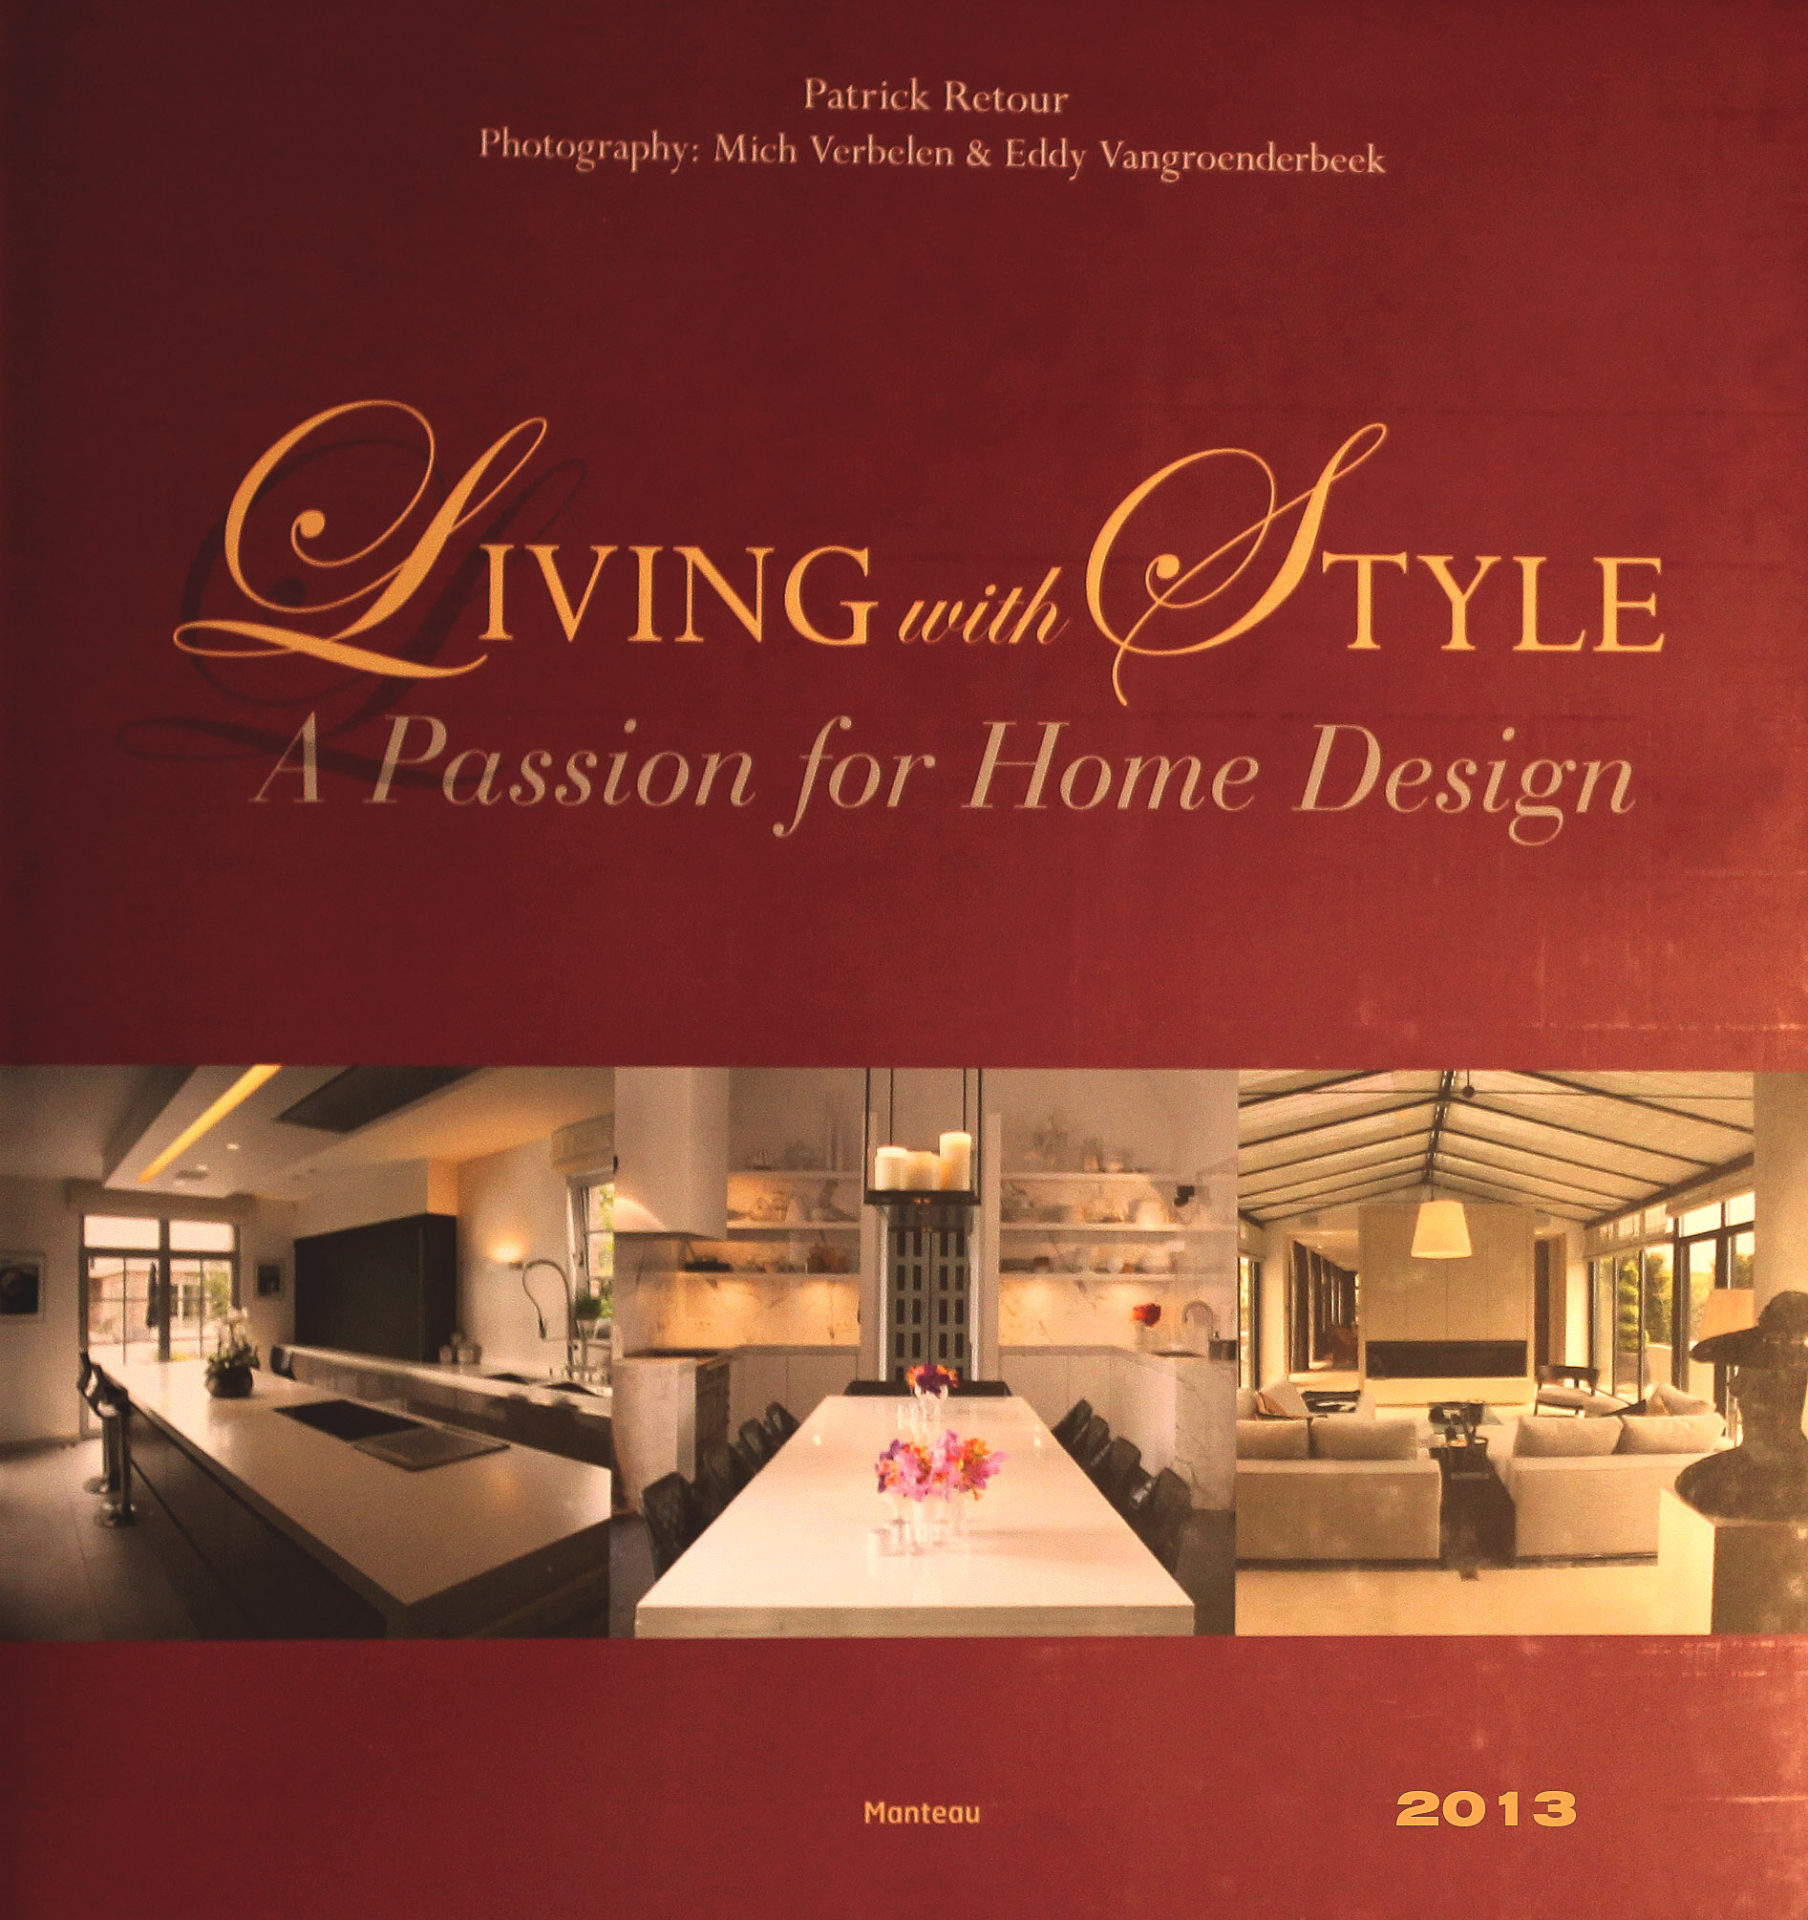 Living with style-villa in Leuven-2013